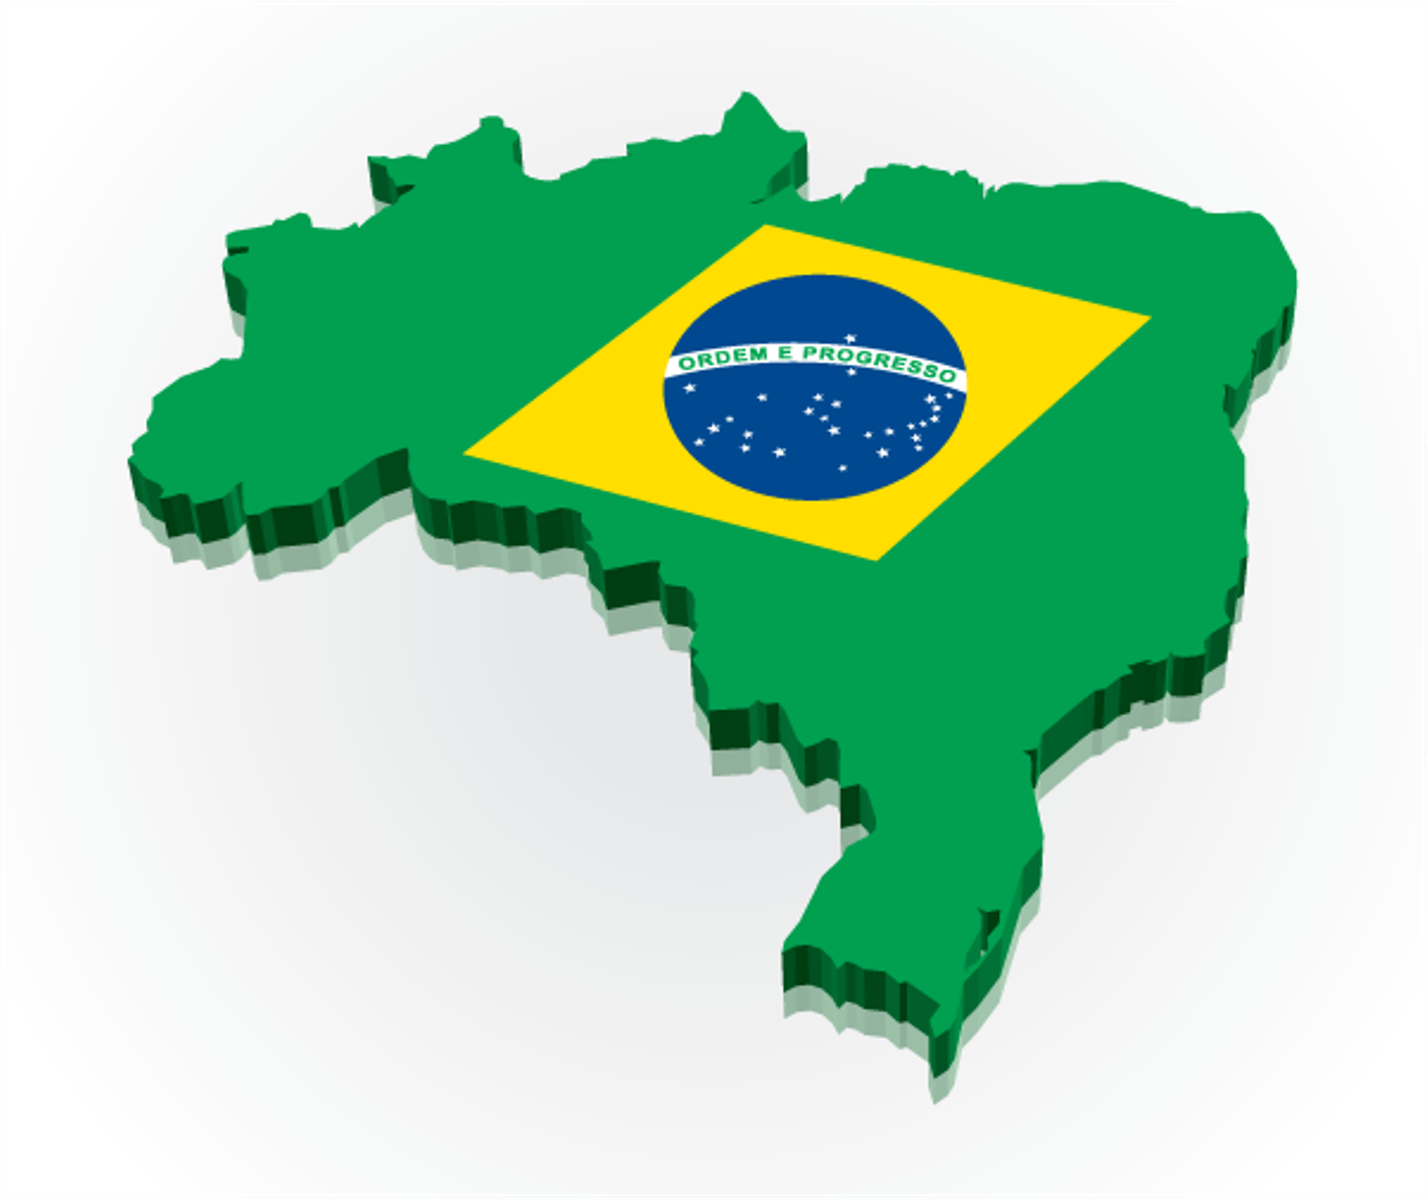 Brazil Flag HD Wallpapers, 0.41 Mb, Hedwig Mccollum